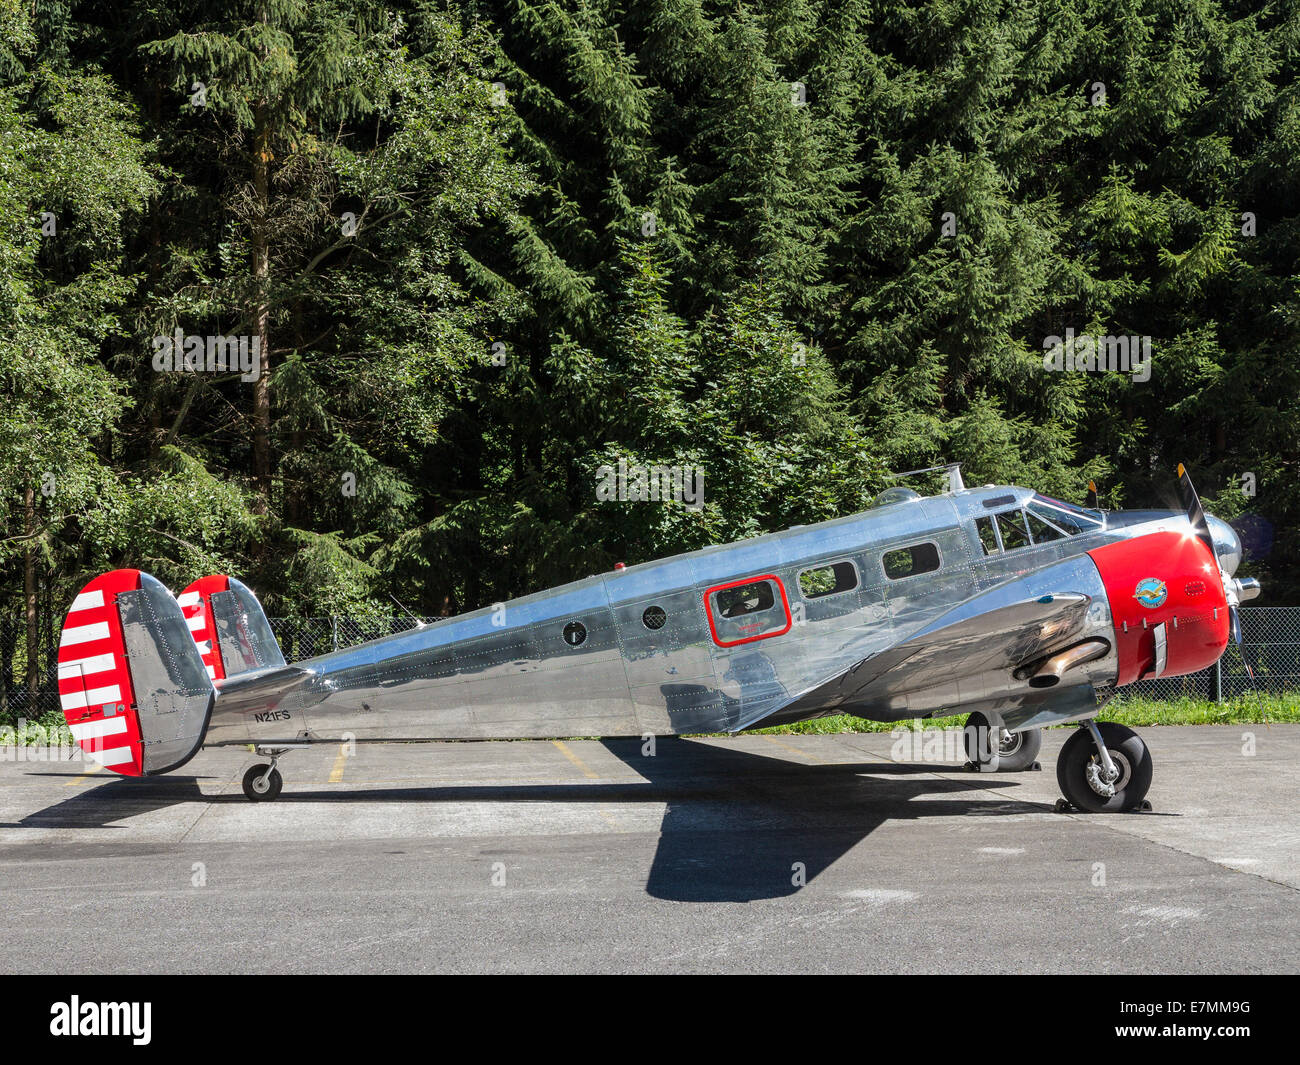 A veteran Beechcraft Twin aircraft (Beechcraft Model-18) parked against a background of trees. - Stock Image